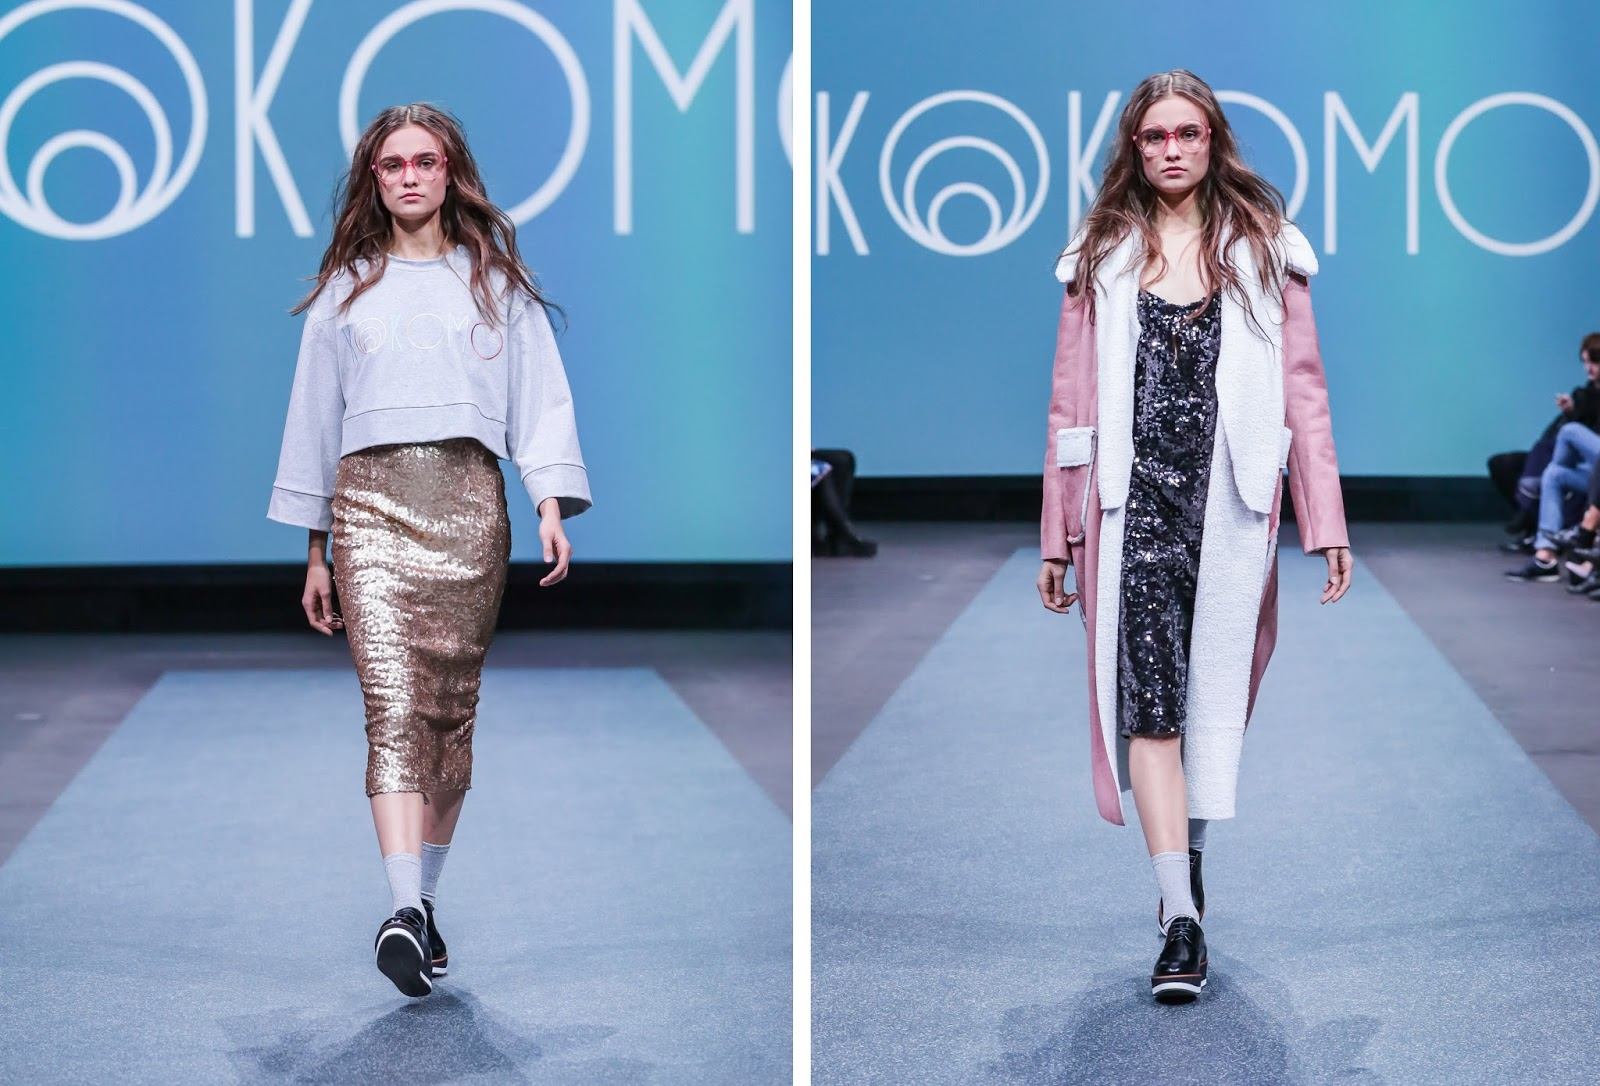 tallinn fashion week kokomo collection